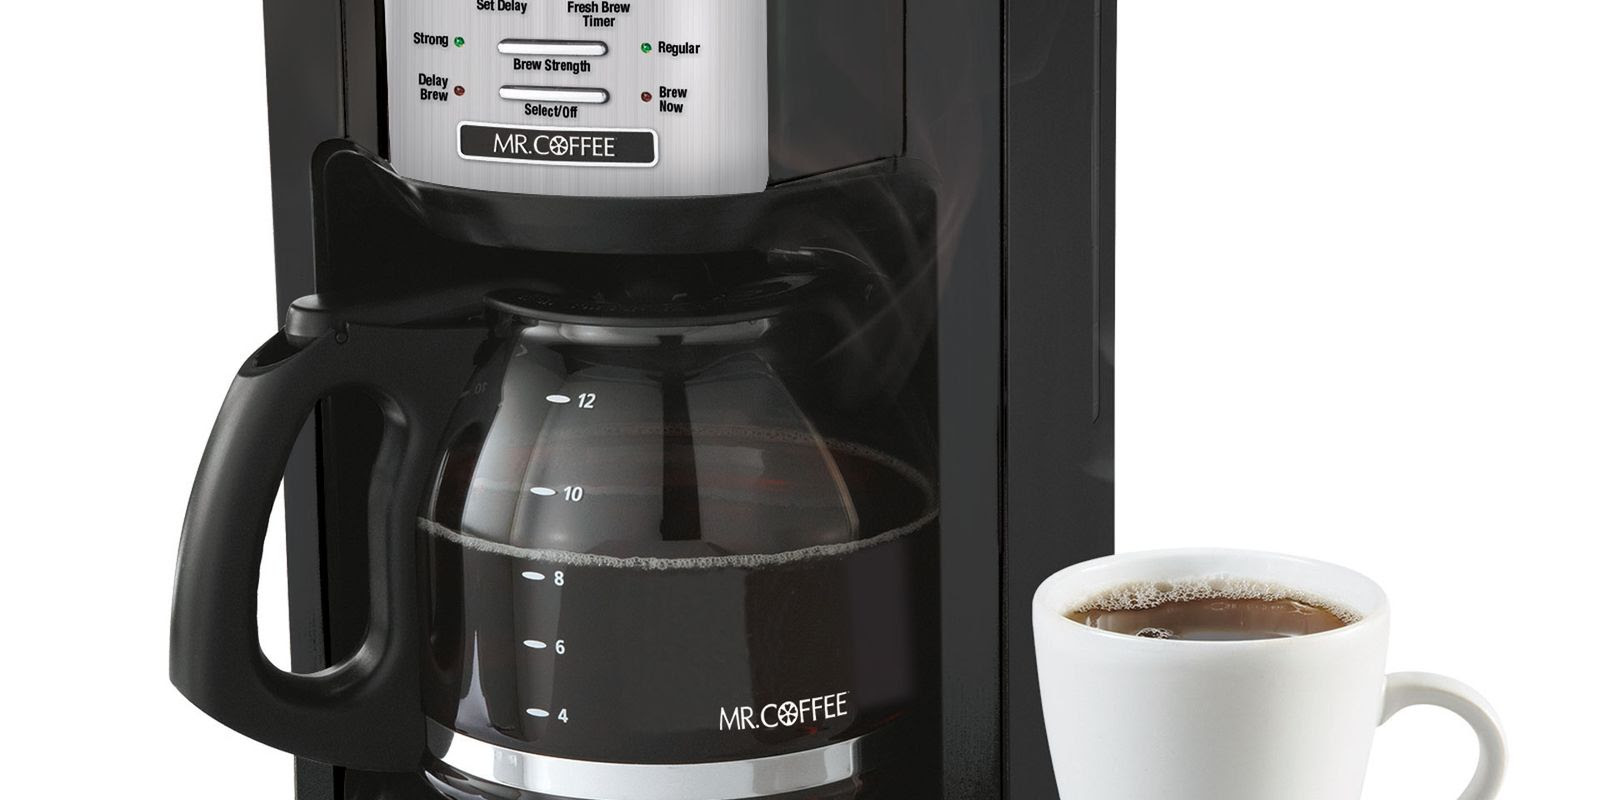 Mr. Coffee 12-Cup Programmable Coffeemaker #BVMC-EHX23 Review